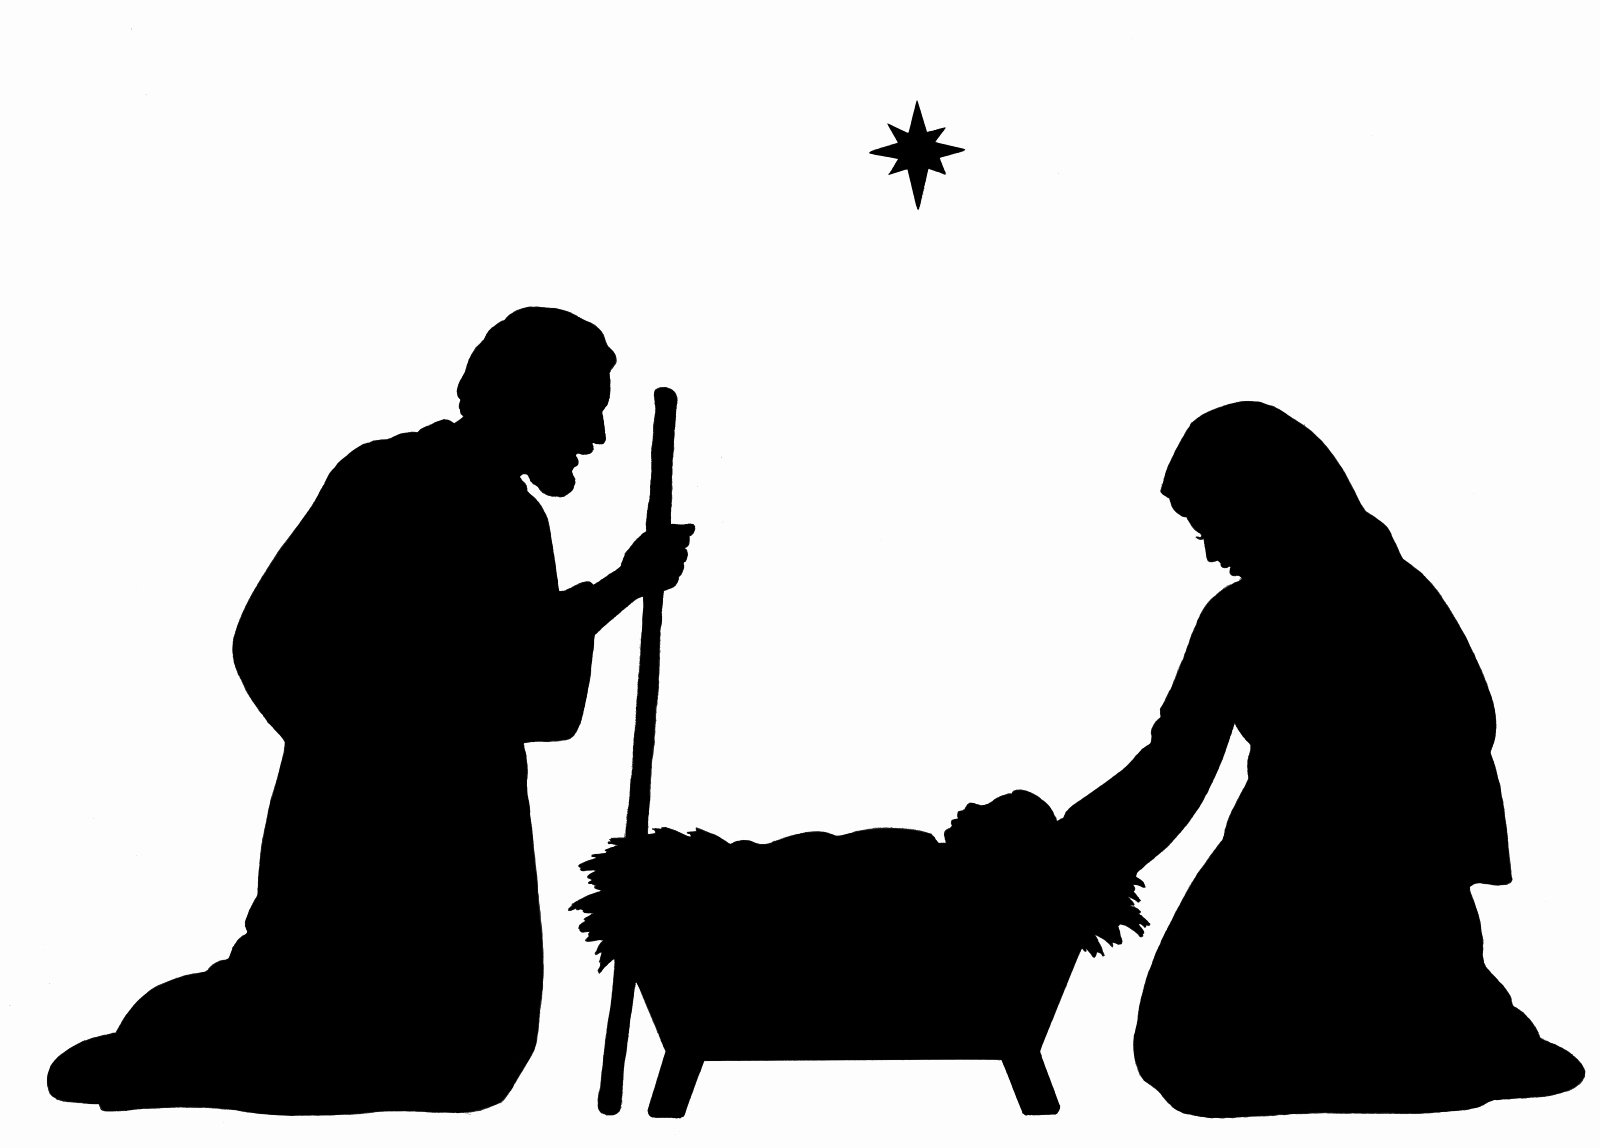 Nativity Silhouette Patterns Download Fresh Nativity Silhouette Patterns Clipart Best